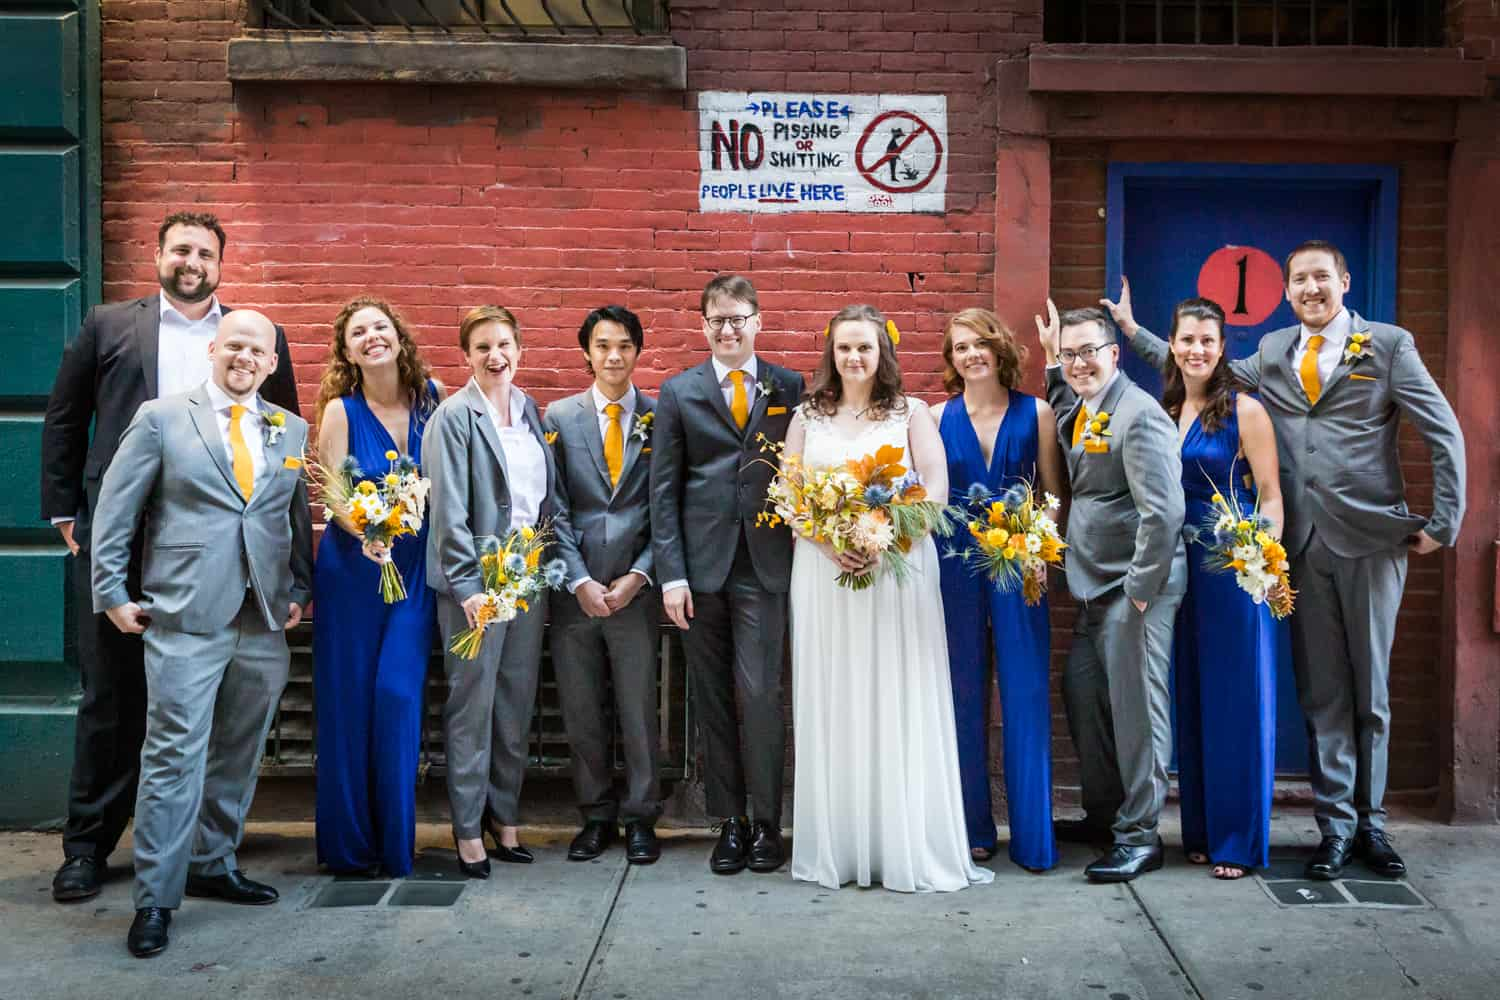 Bridal party standing in front of sign for an article on Covid-19 wedding planning